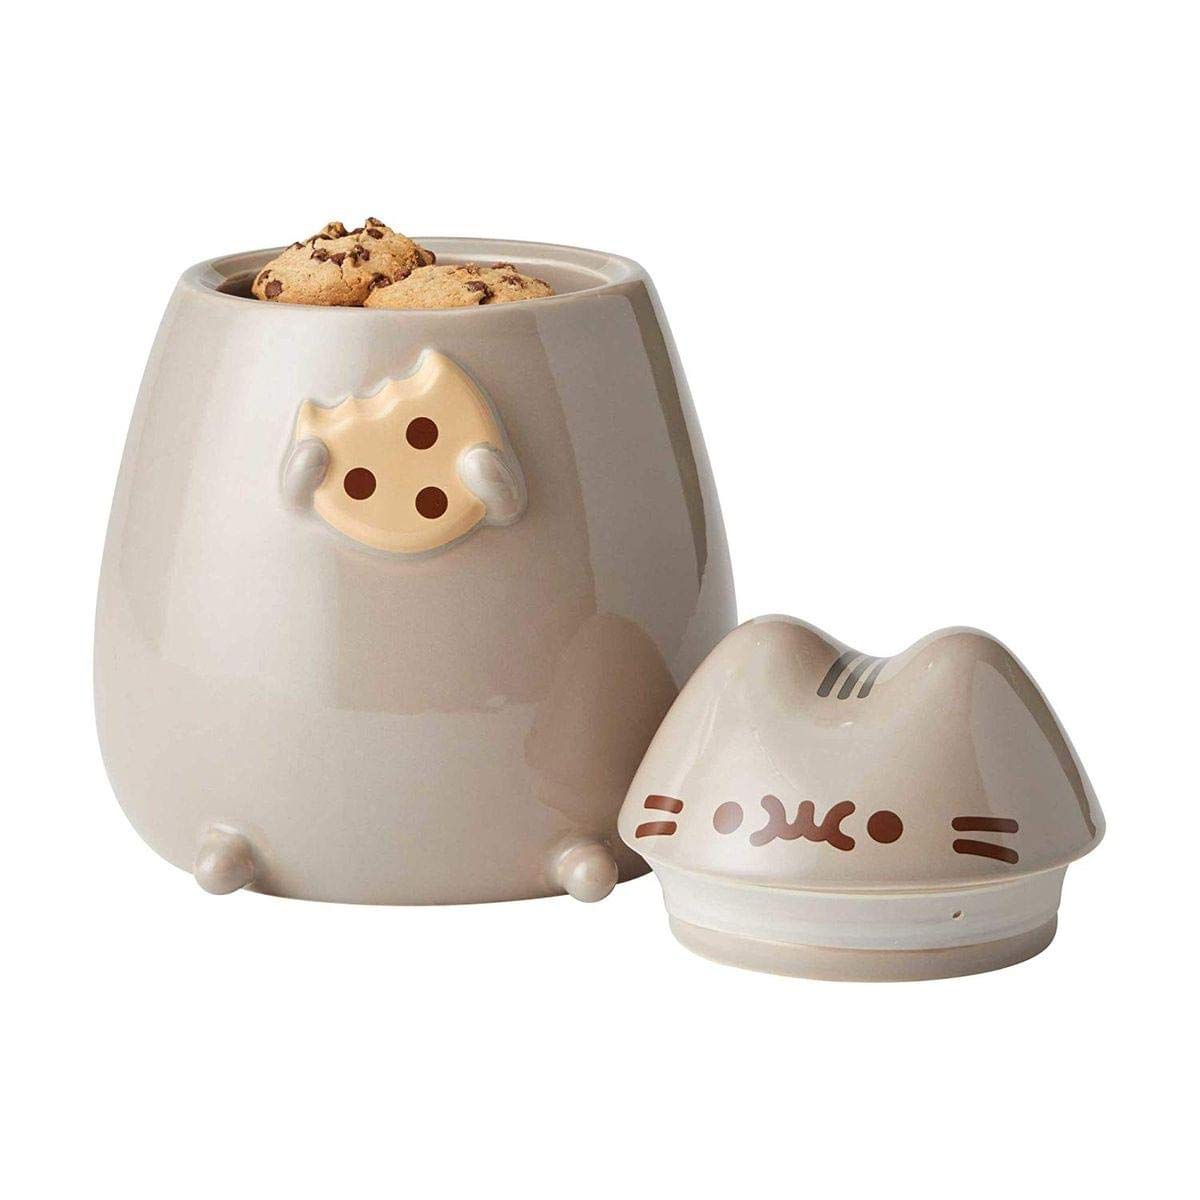 Enesco 6002674 Pusheen by Our Name is Mud Sculpted Cookie Jar 8 Gray